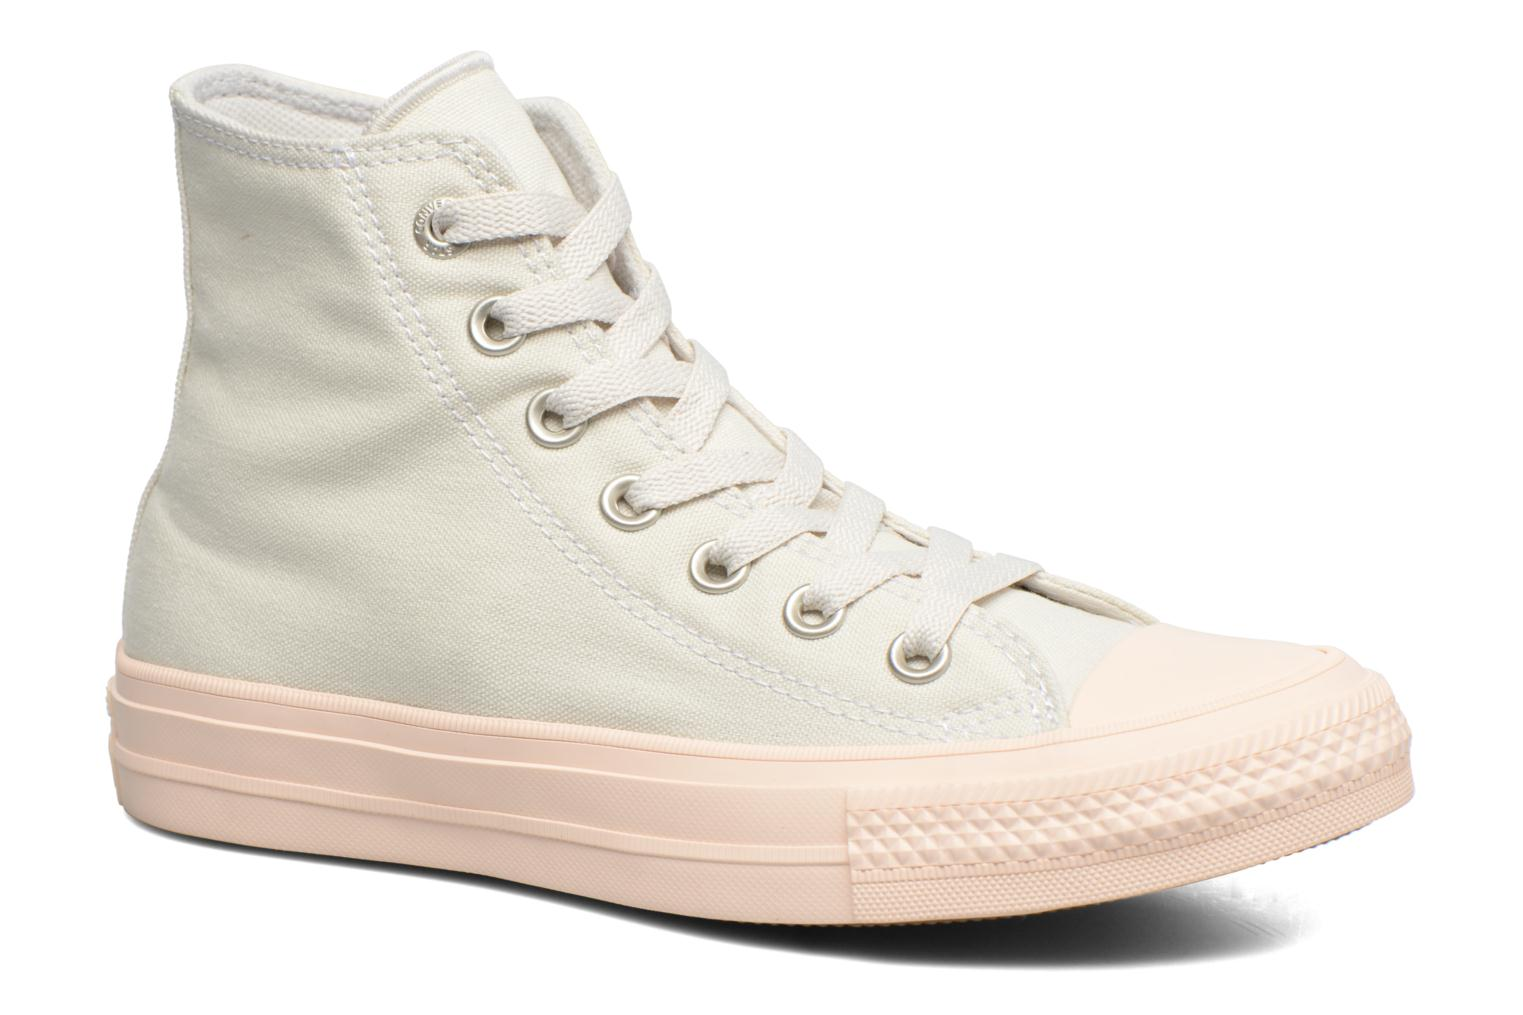 Marques Chaussure femme Converse femme Chuck Taylor All Star II Hi Pastel Midsoles W Buff/Barely Orange/Barely Orange